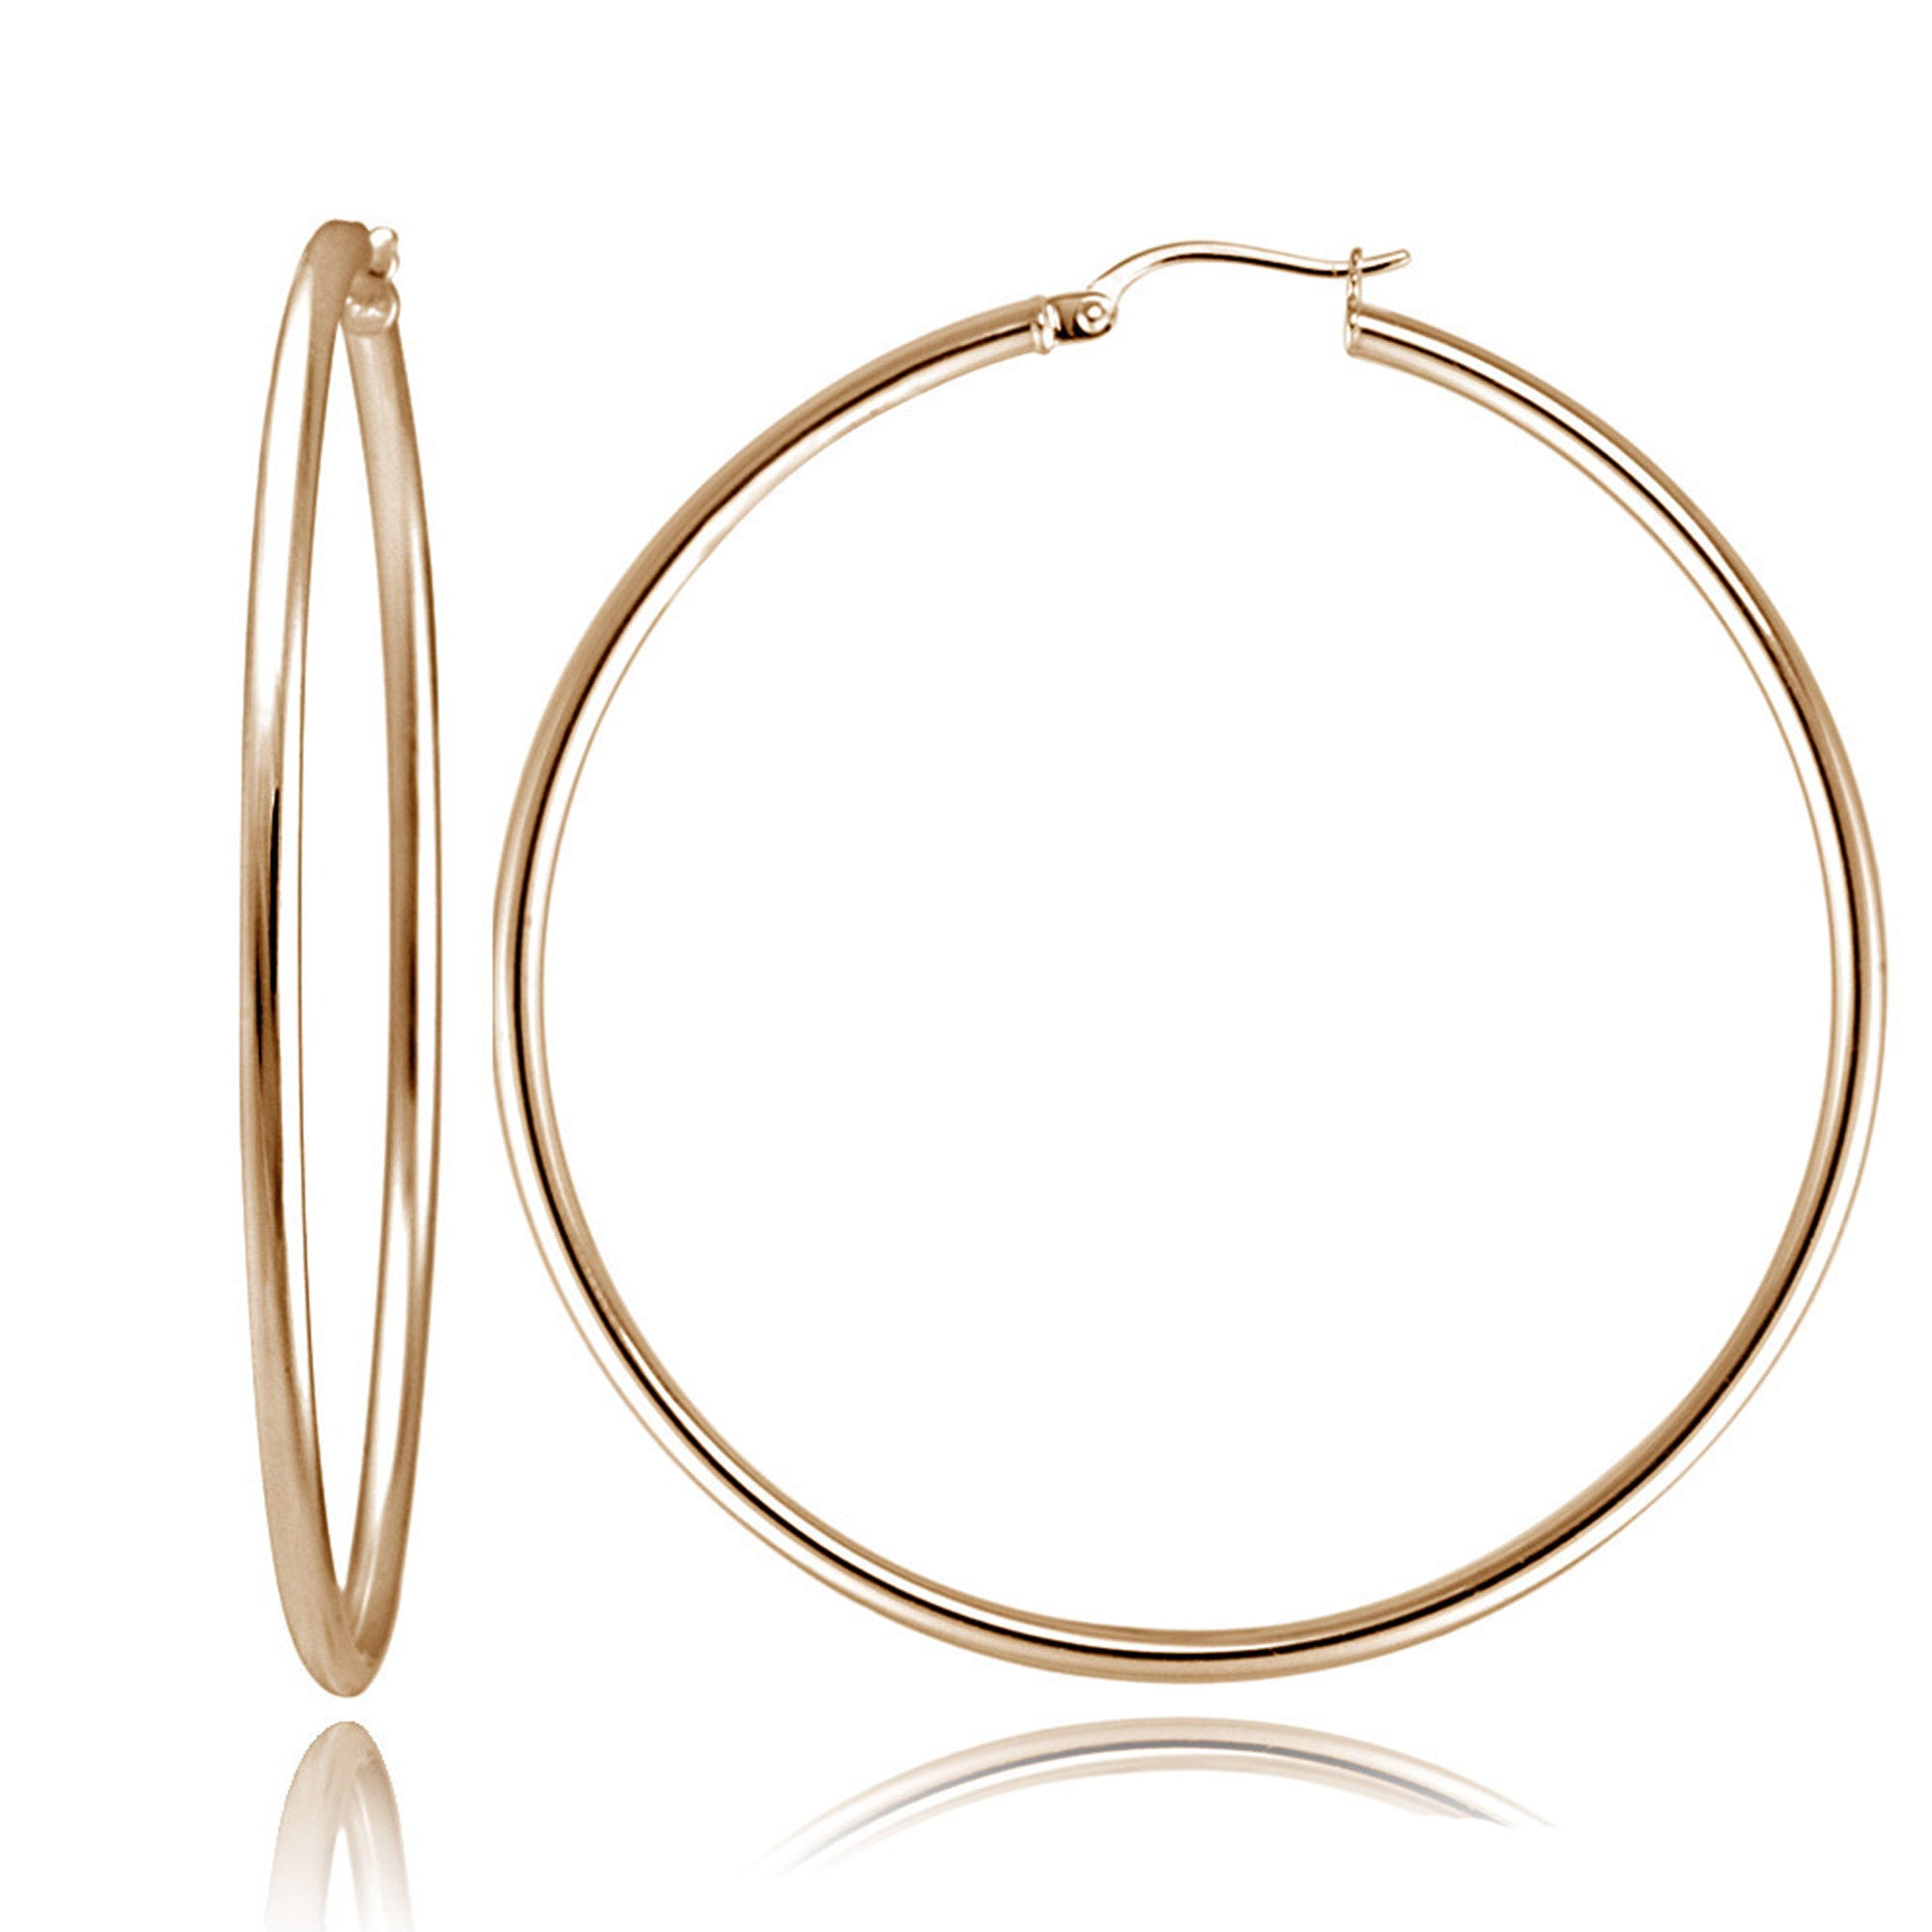 Polished Sterling Silver 50mm Round Saddleback Hoop Earrings - Rose Gold